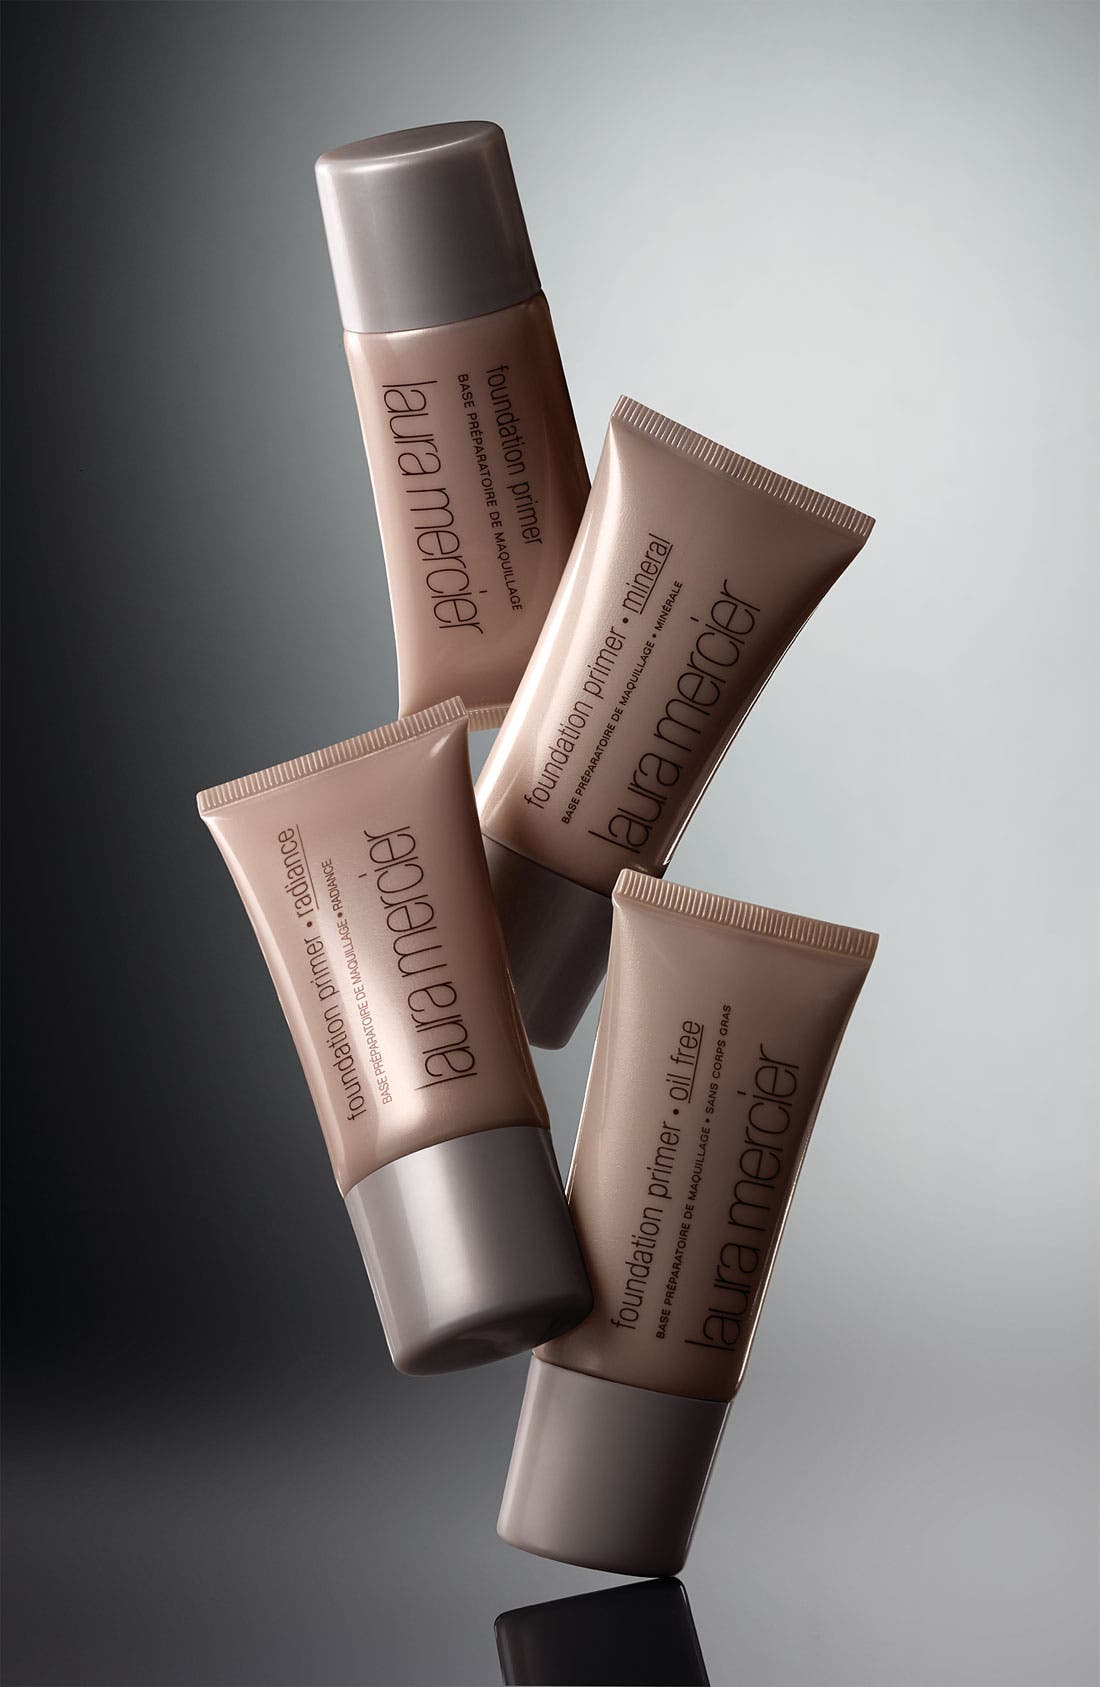 'Radiance' Foundation Primer,                             Main thumbnail 1, color,